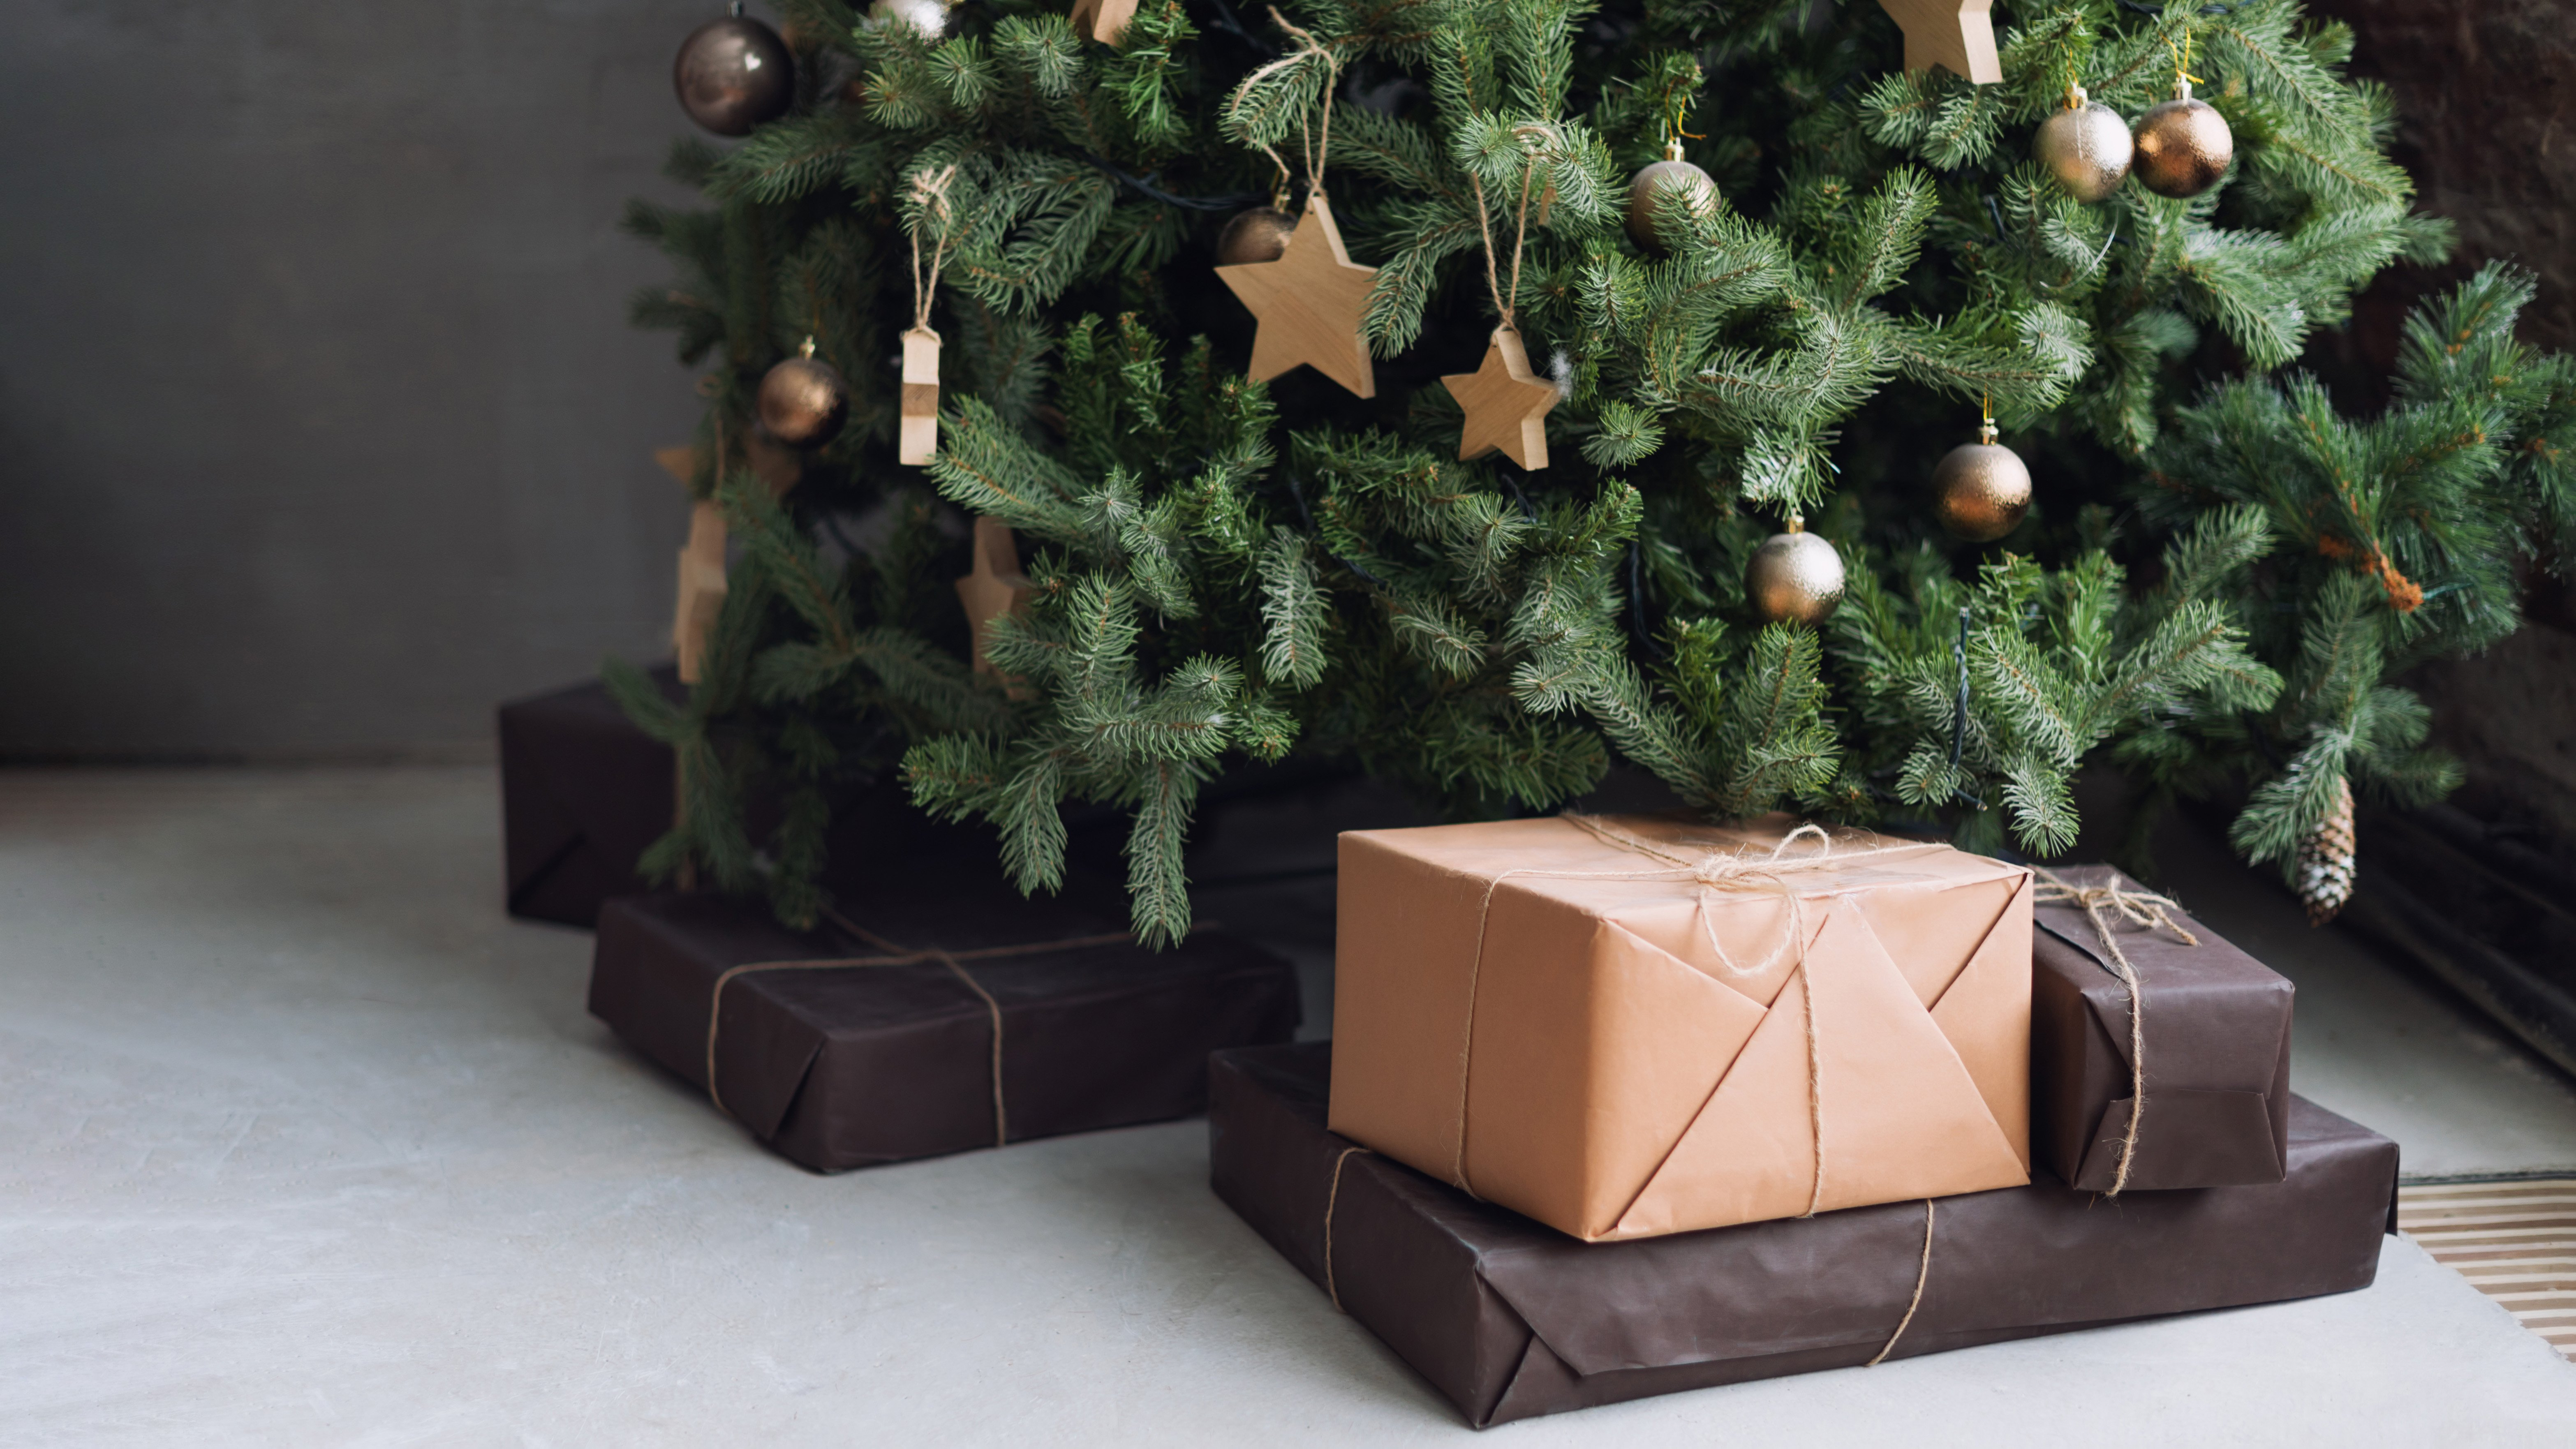 best artificial christmas tree 2020 have a hassle free xmas with our pick of the best fake christmas trees expert reviews